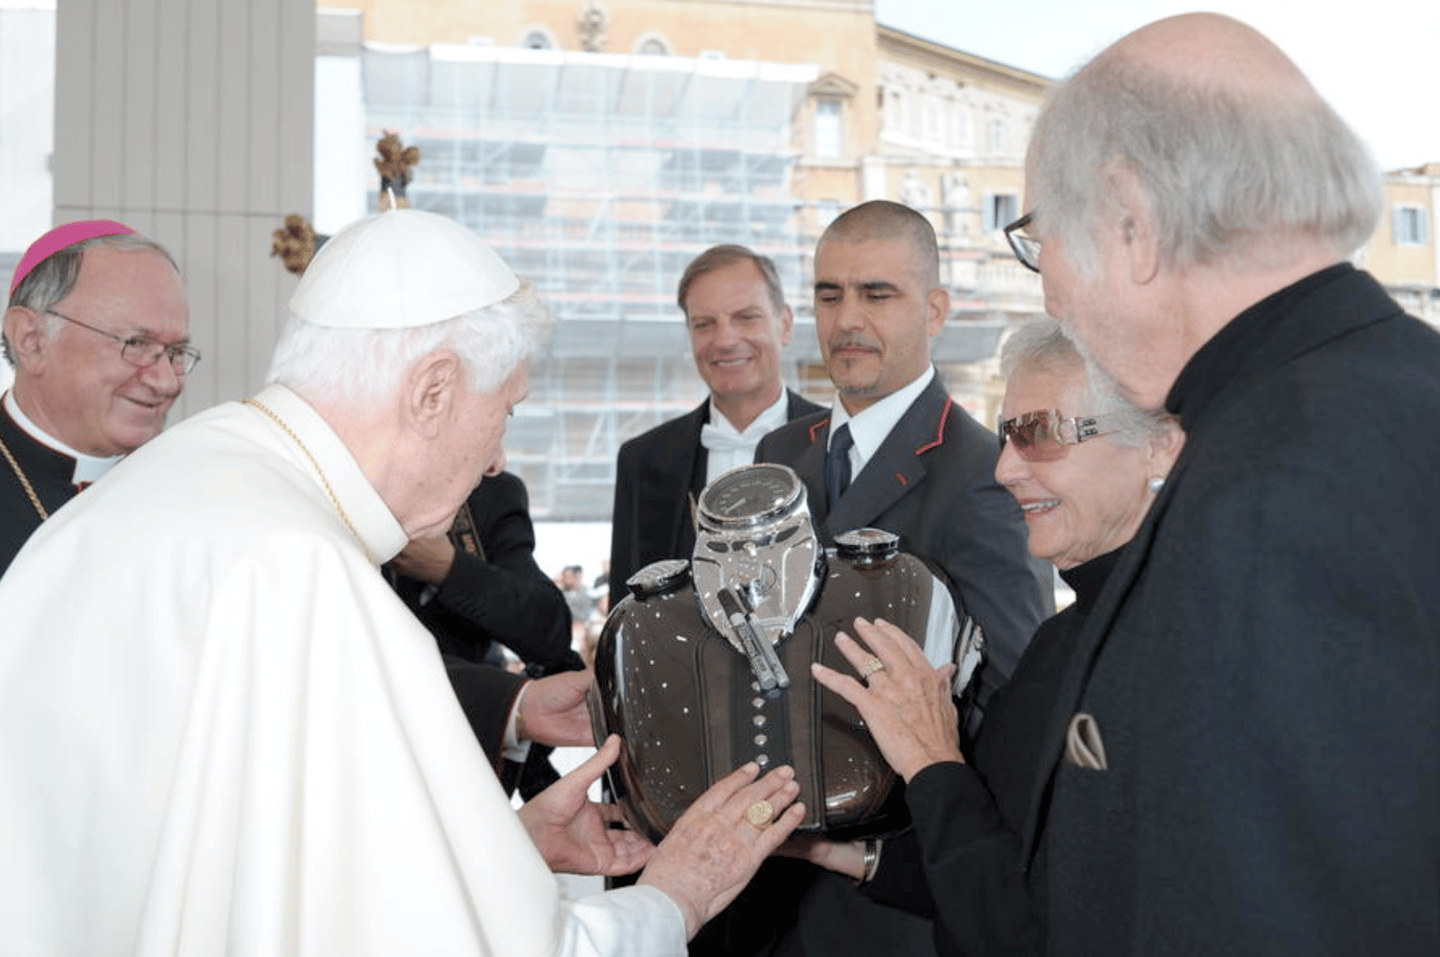 As part of Harley-Davidson's 110th anniversary celebrations, two commemorative motorcycle fuel tanks were presented to the then Pope, Benedict XVI